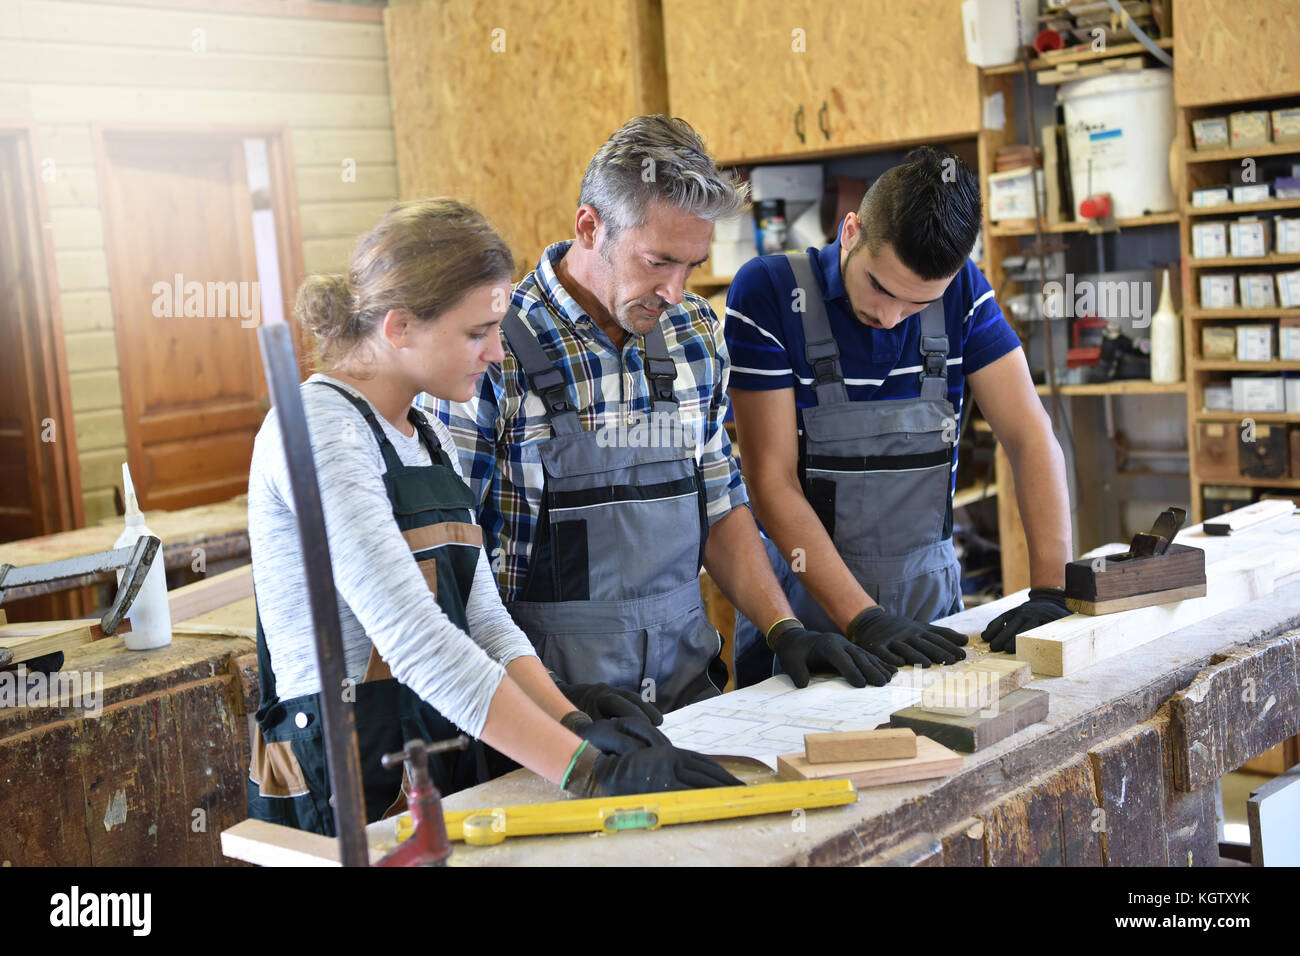 Group of students in woodwork training course - Stock Image